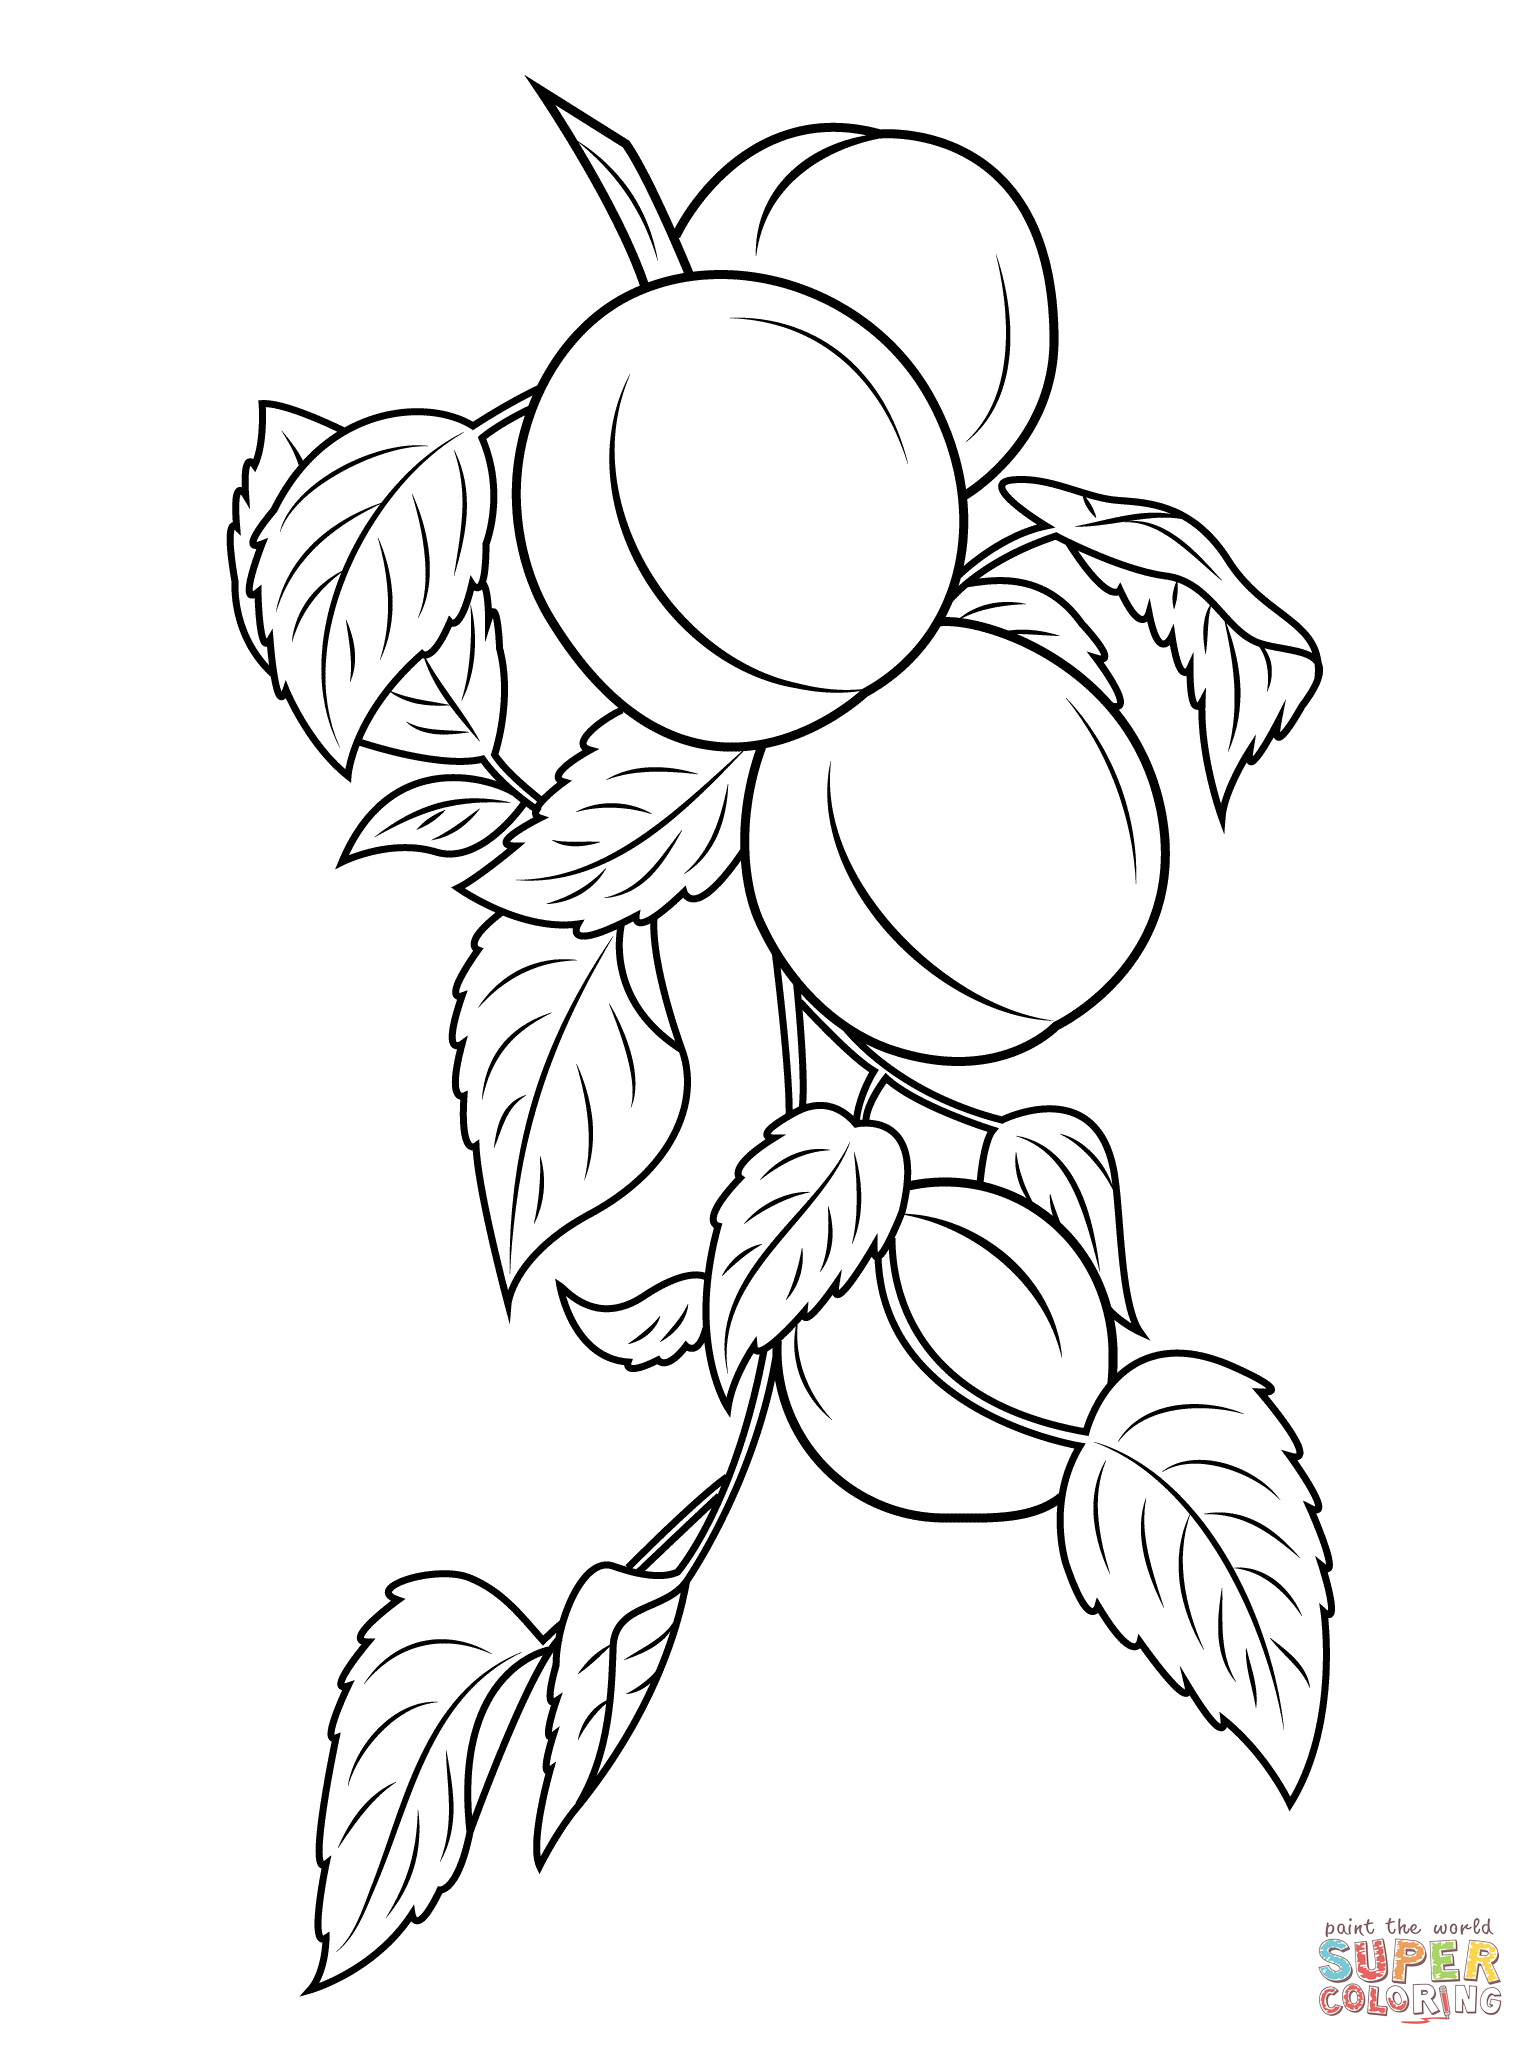 branch coloring page willow tree branches drawing sketch coloring page page coloring branch